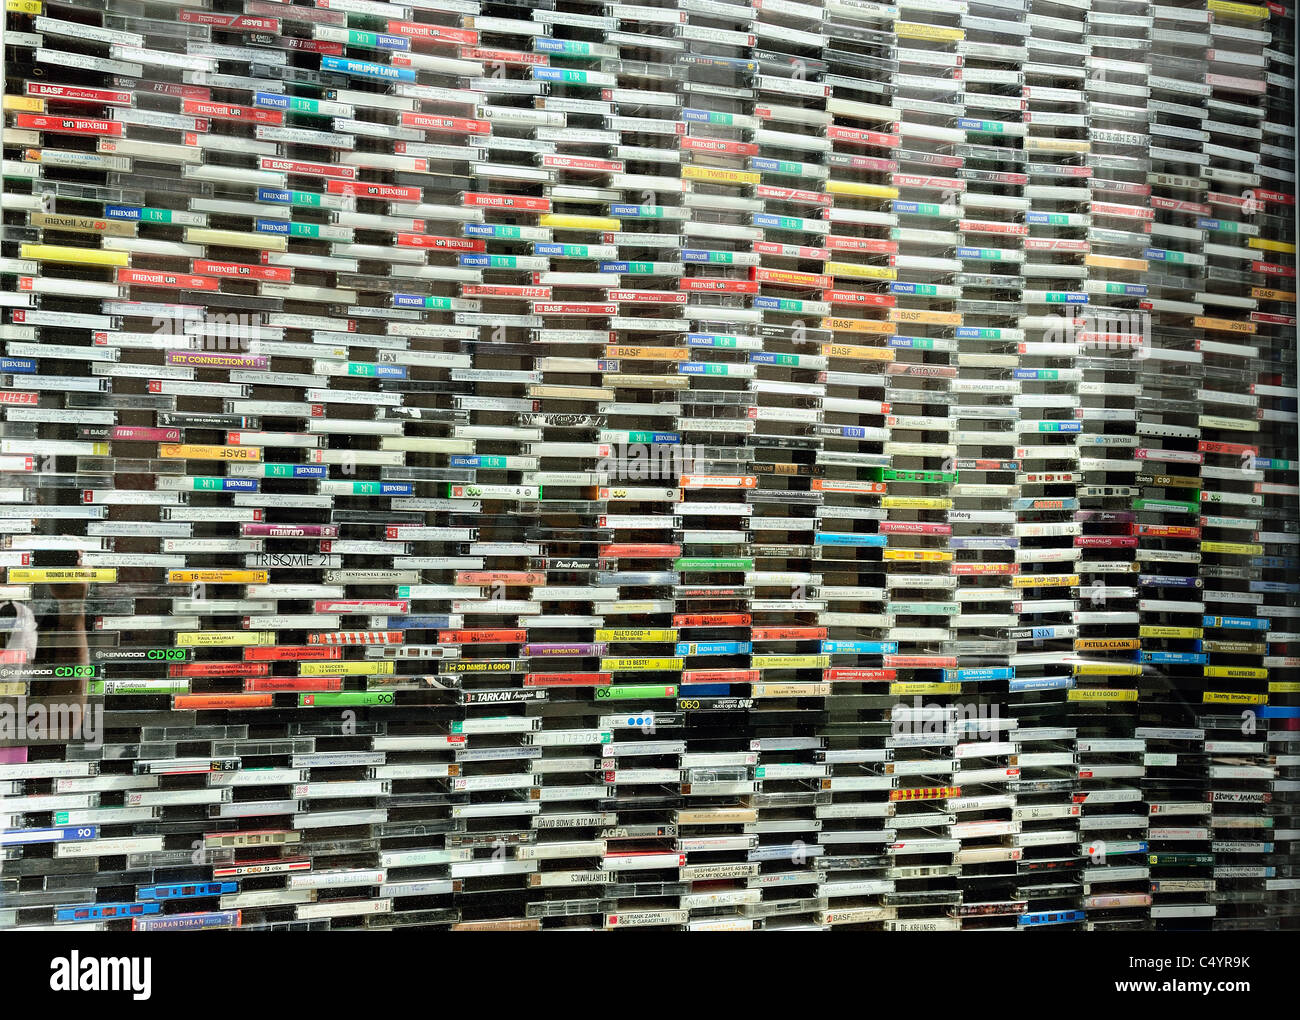 A wall of music cassette tapes lined up against a window forming a creative visual image. - Stock Image